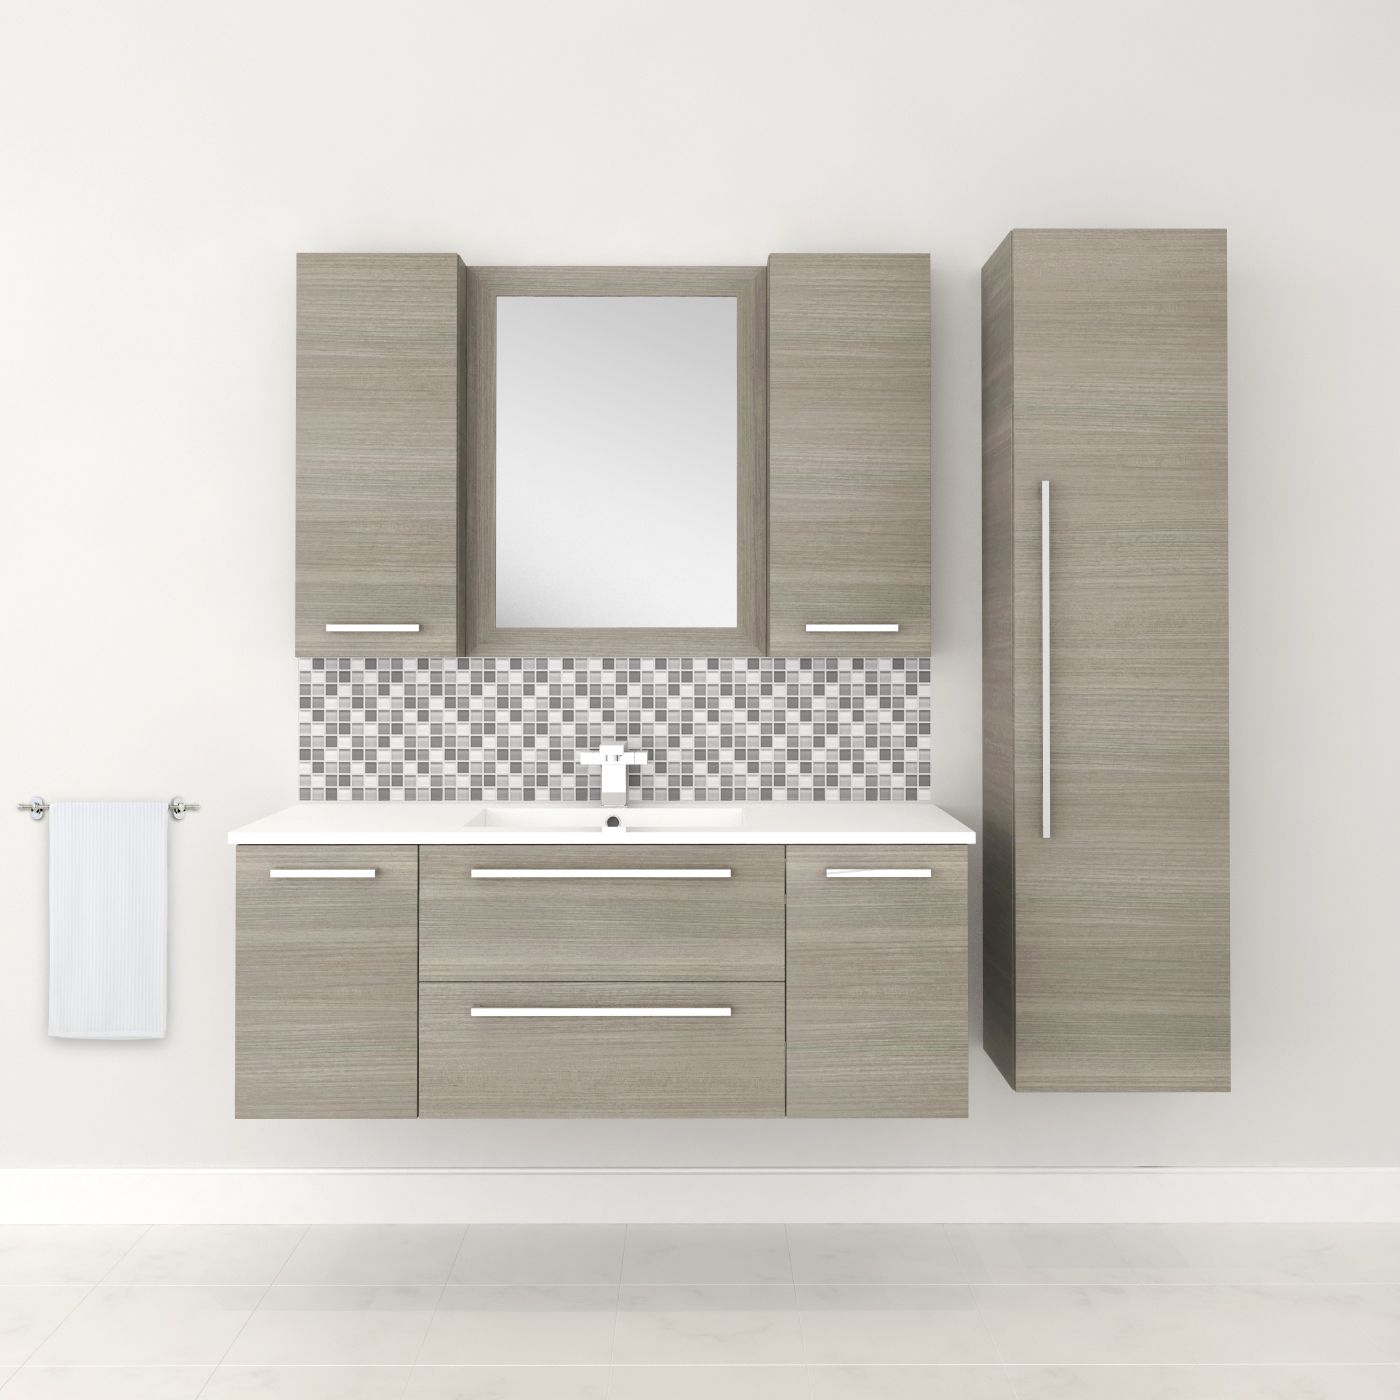 Custom Bathroom Vanities Brampton silhouette collection - aria #vanity #drawers #sink #lightcabinets